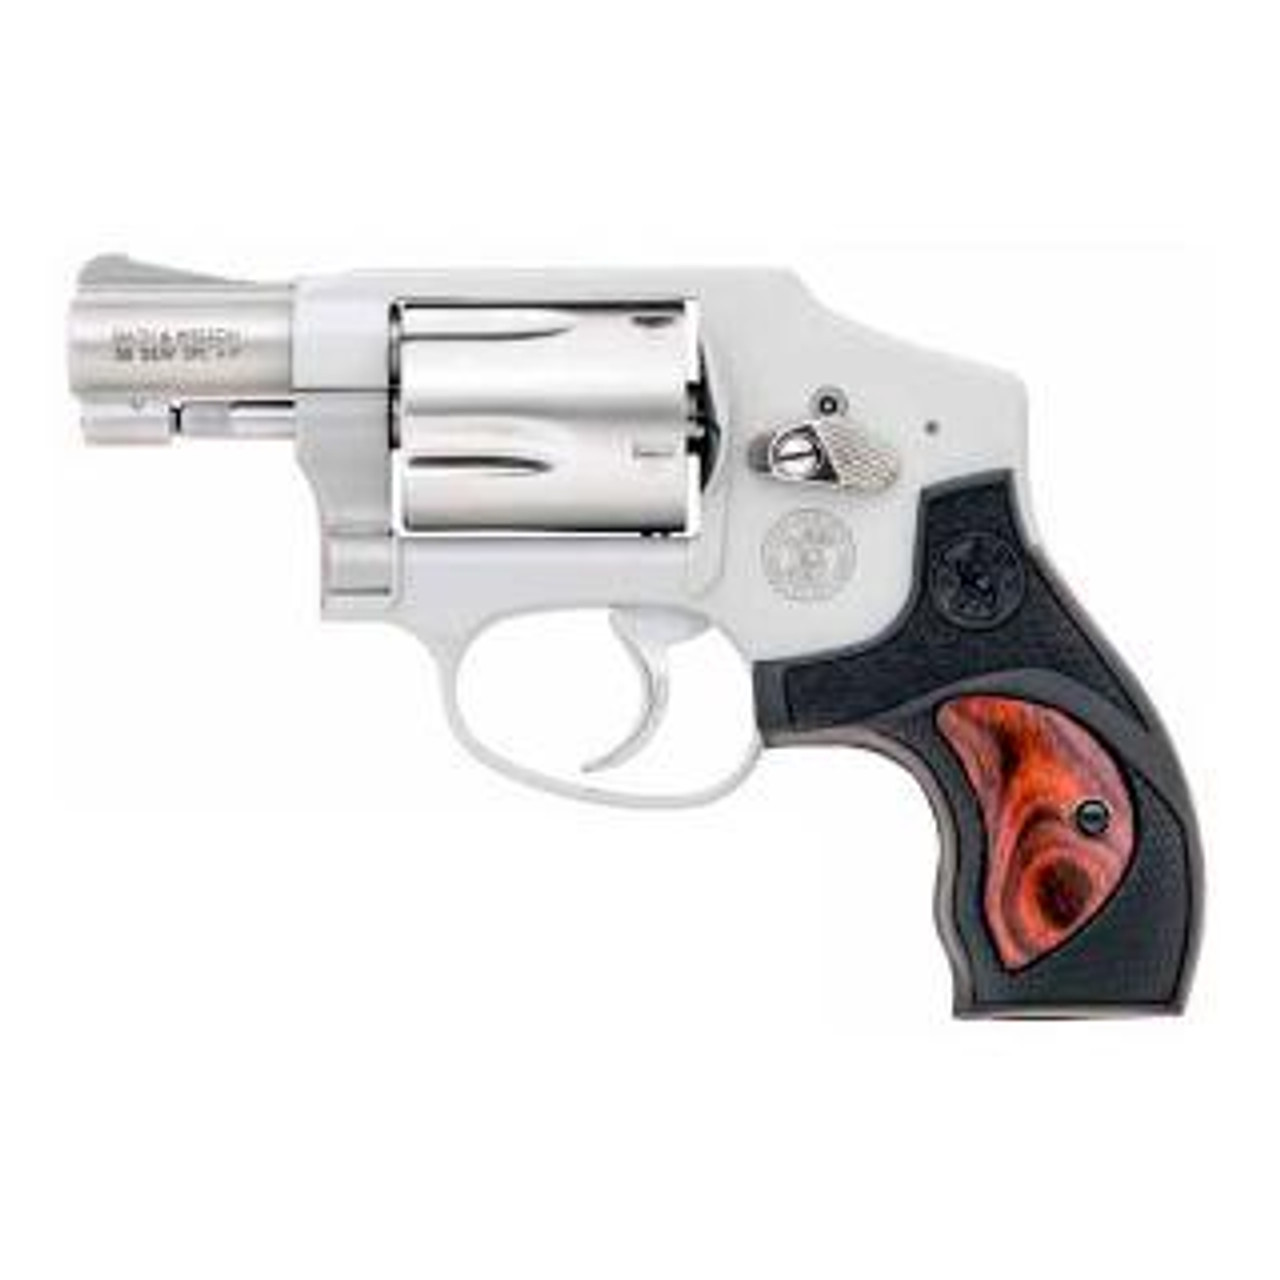 Smith & Wesson, 642, Performance Center Revolver, Double Action Only CALIFORNIA LEGAL- .38Special